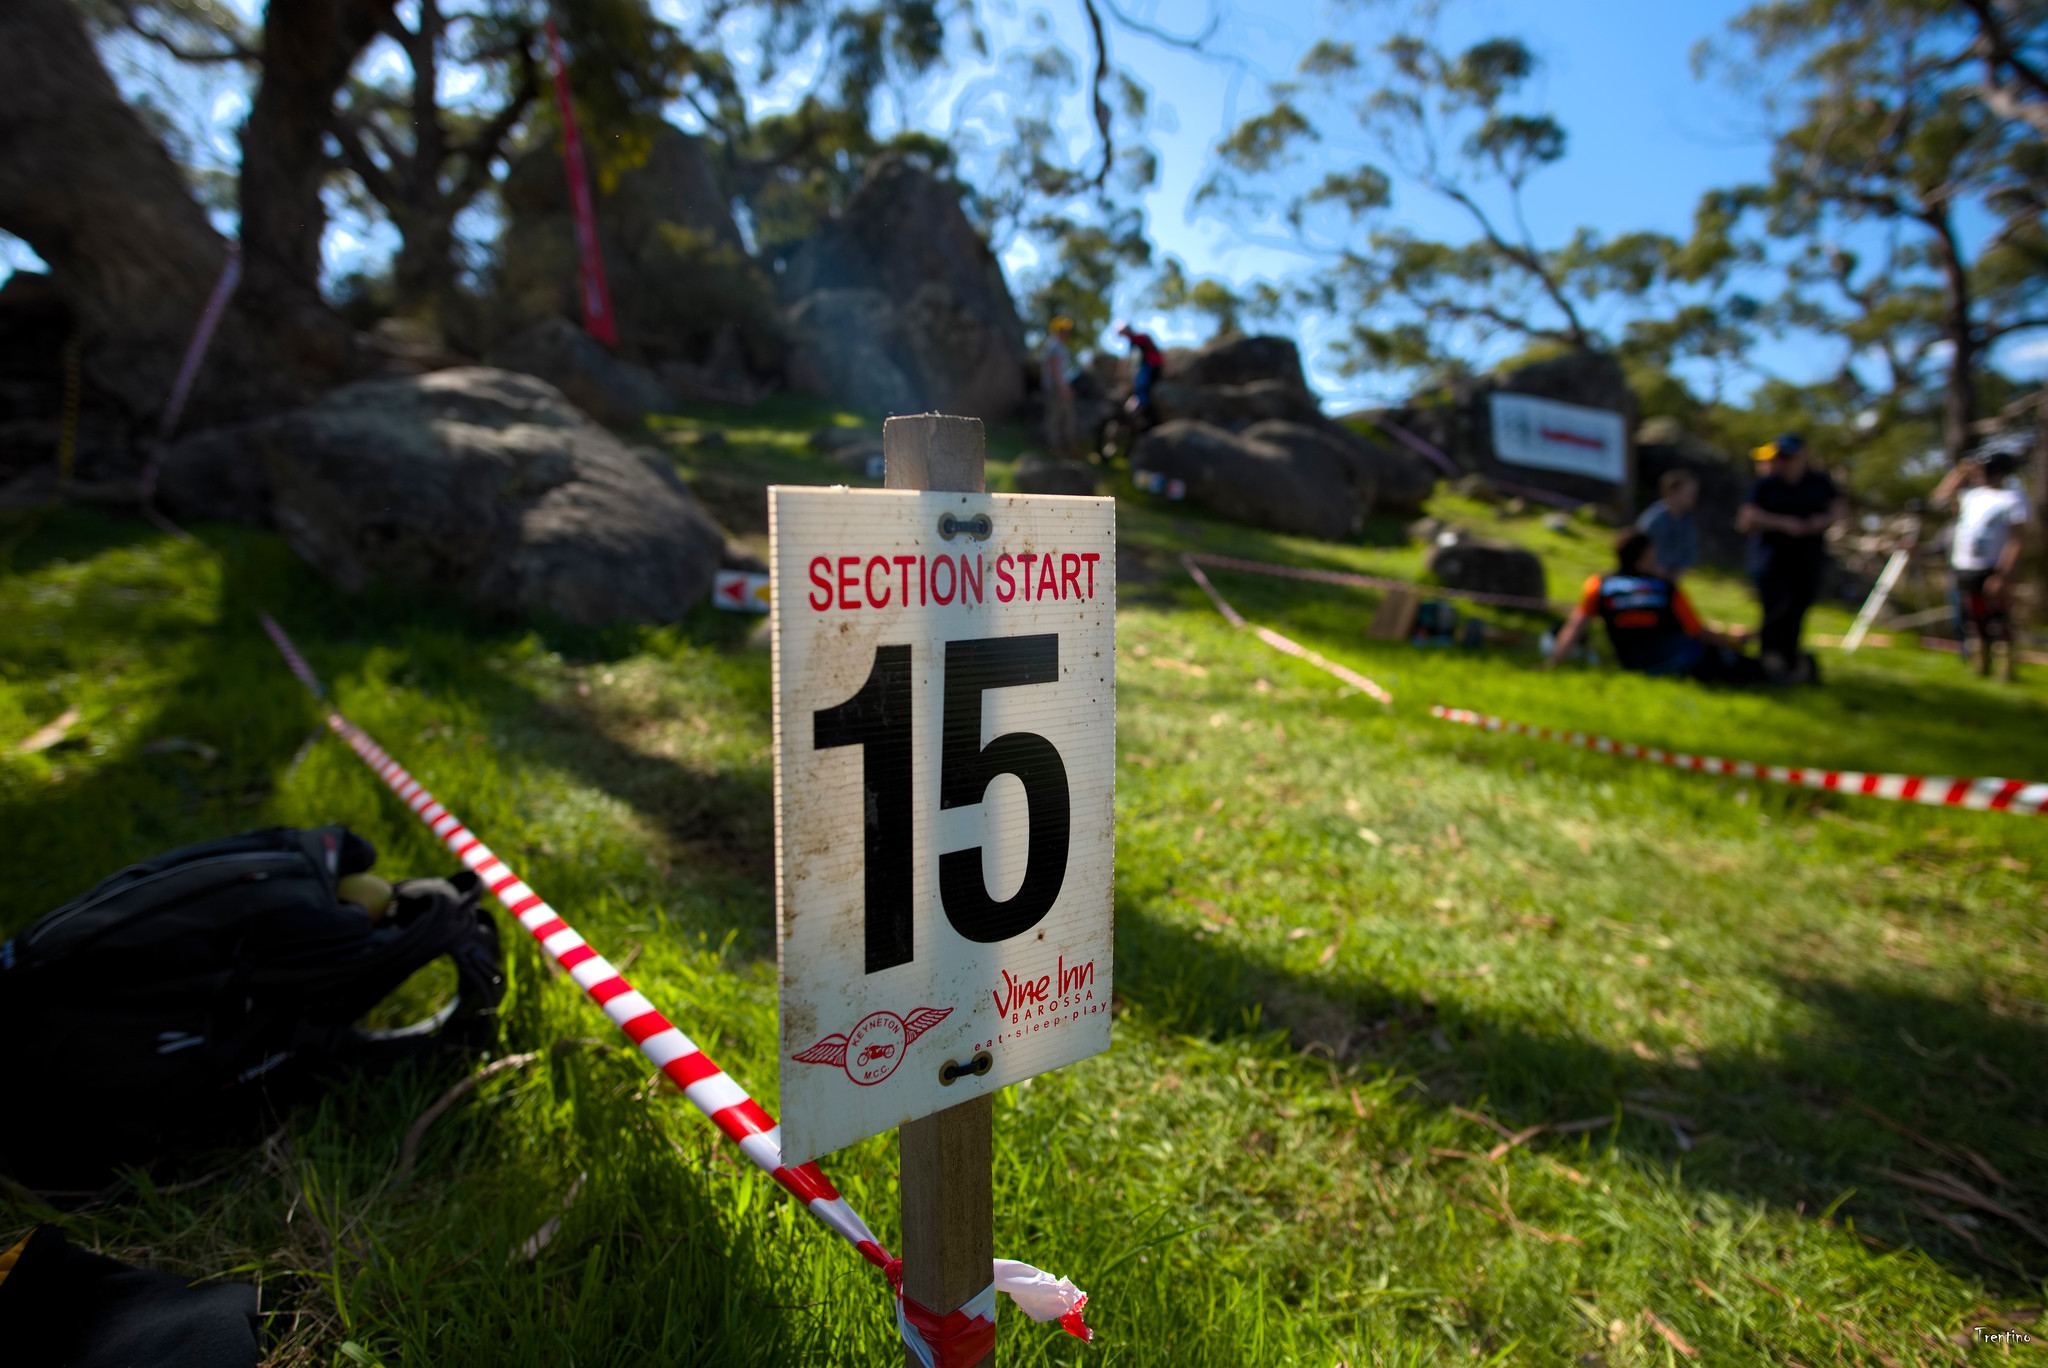 NSW Trial Championship Entries closing soon.